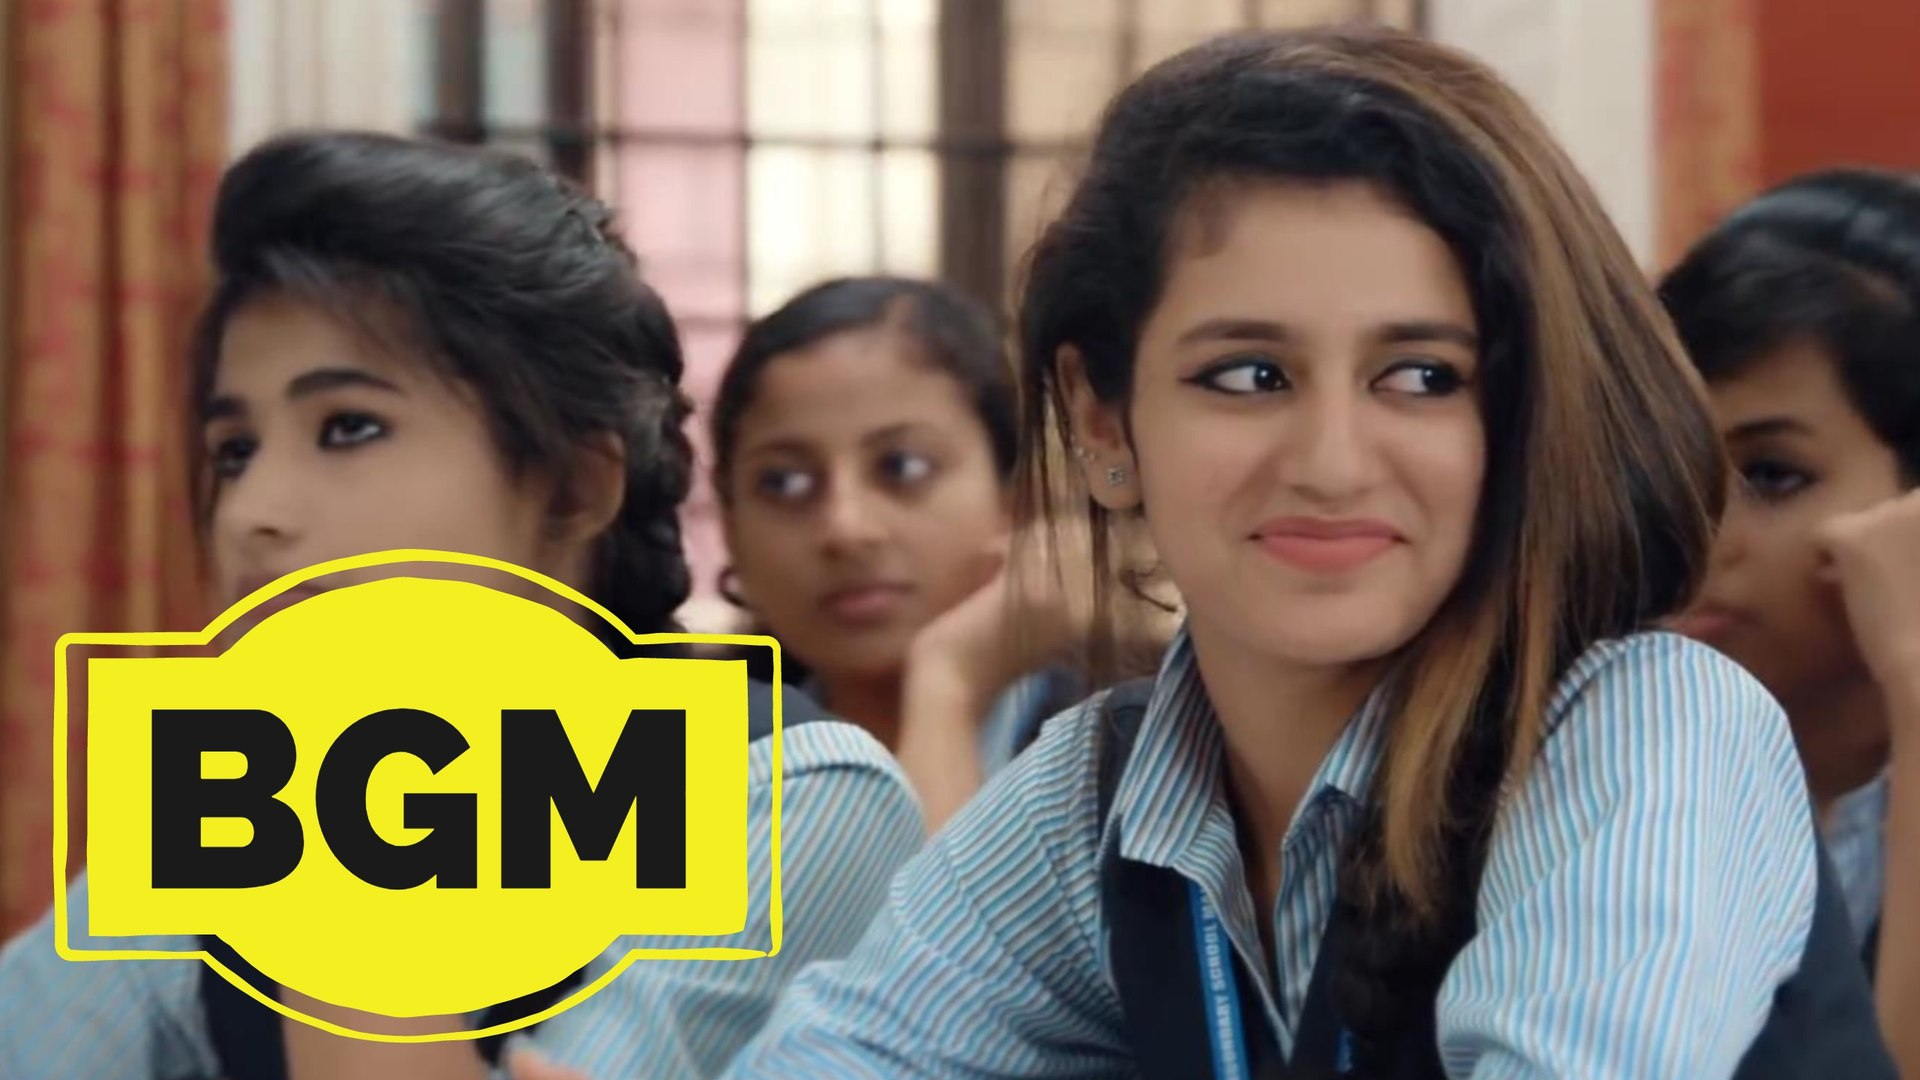 Oru Adaar Love #BGM | Official Teaser Background Music ft Priya Prakash Varrier, Roshan Abdul | Shaa